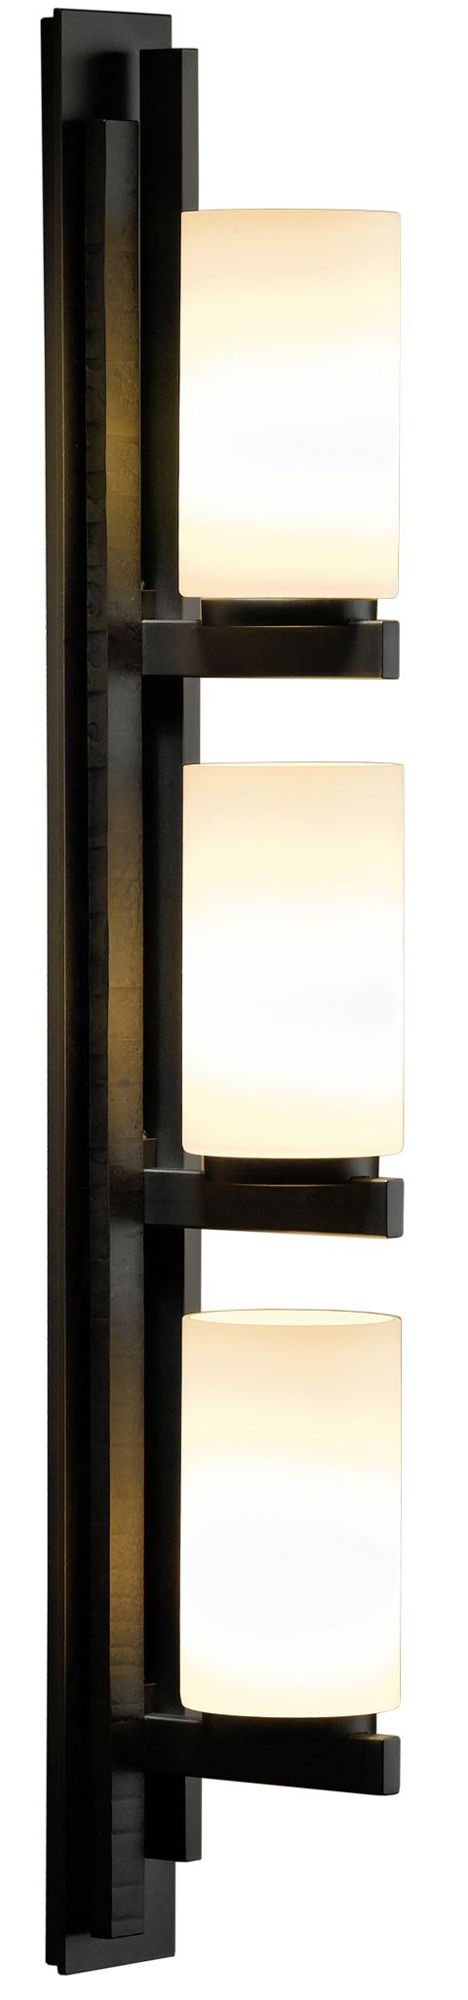 Right vertical 3 light bathroom vanity light by hubbardton forge ondrian right vertical 3 light bathroom vanity light by hubbardton forge 206309 1030 aloadofball